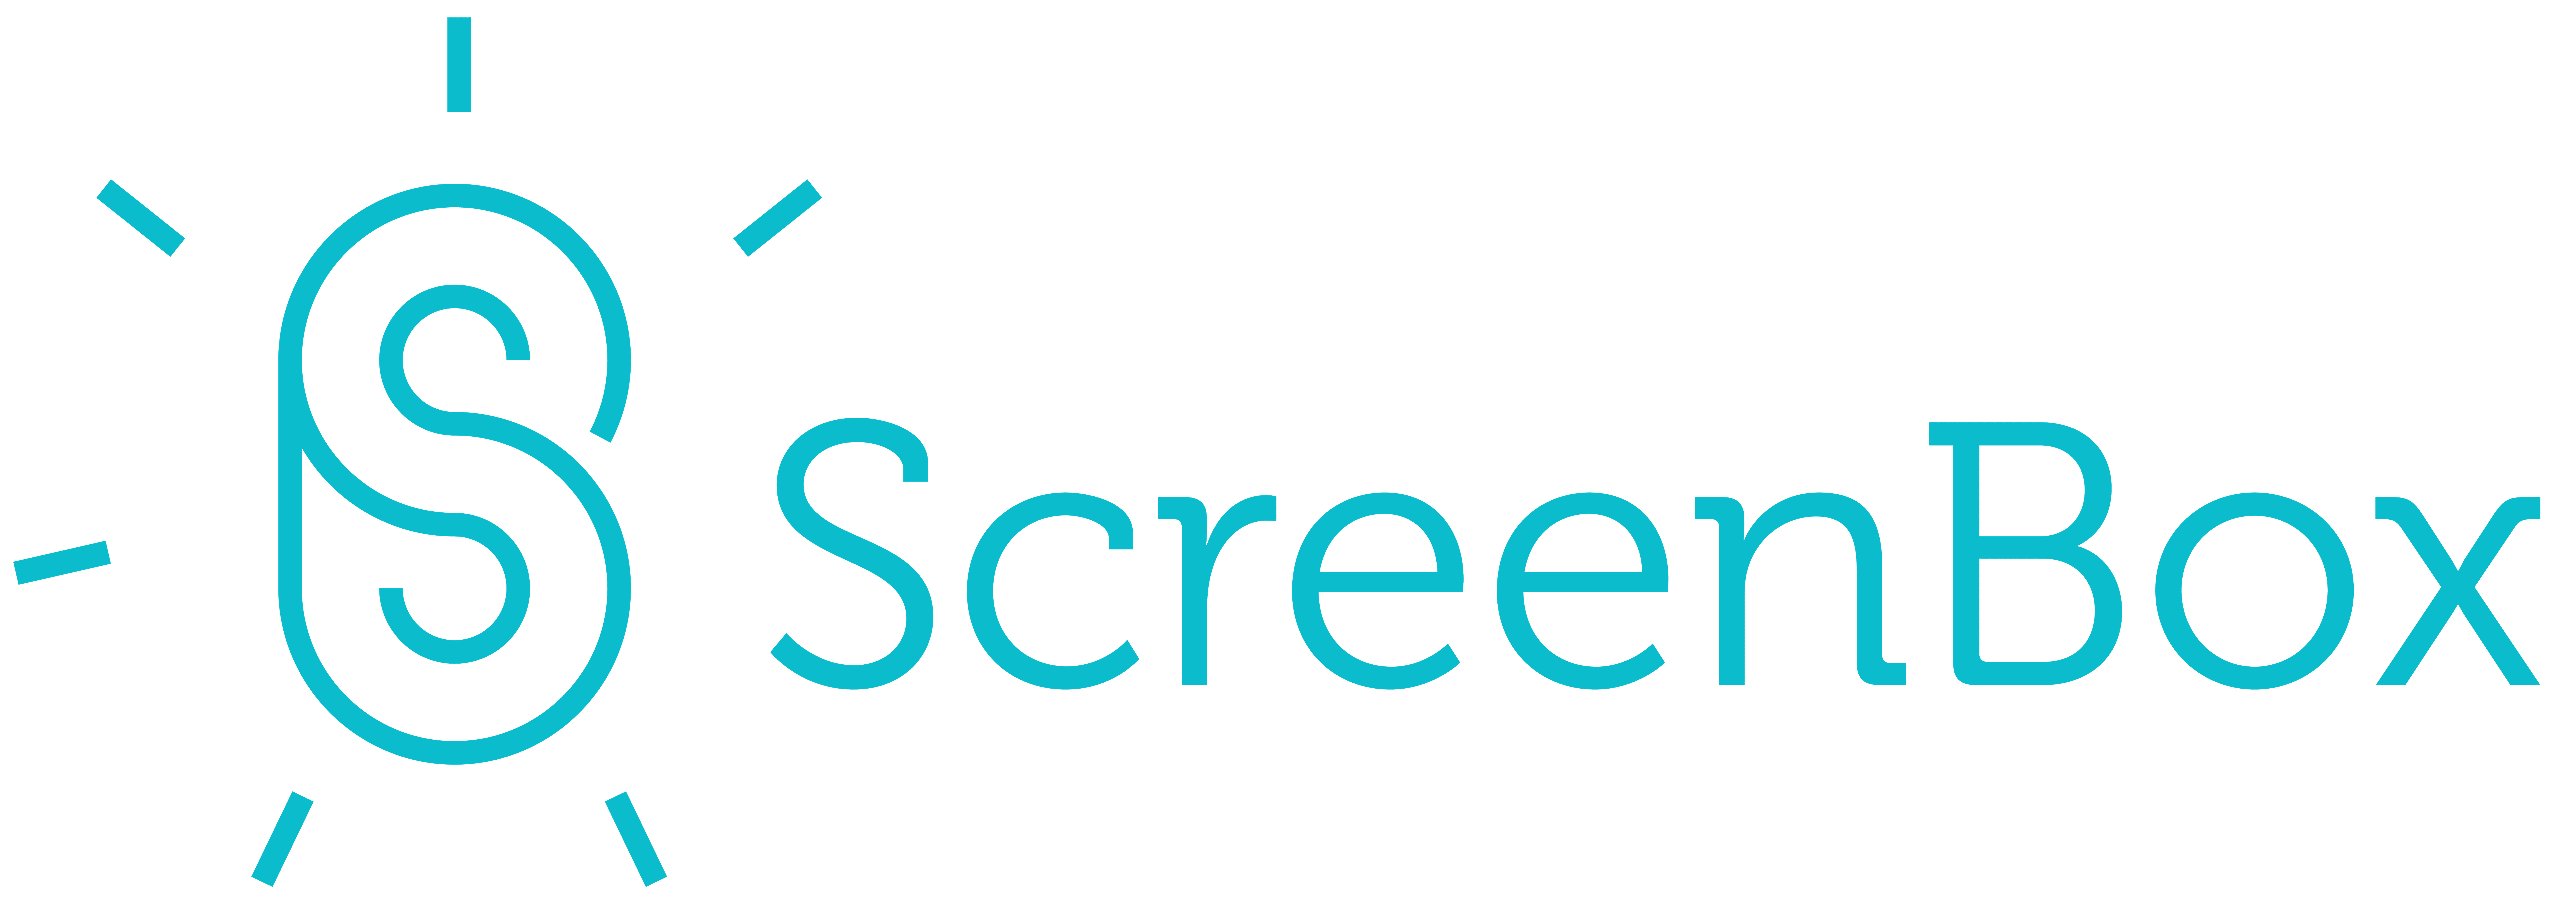 ScreenBox couleur